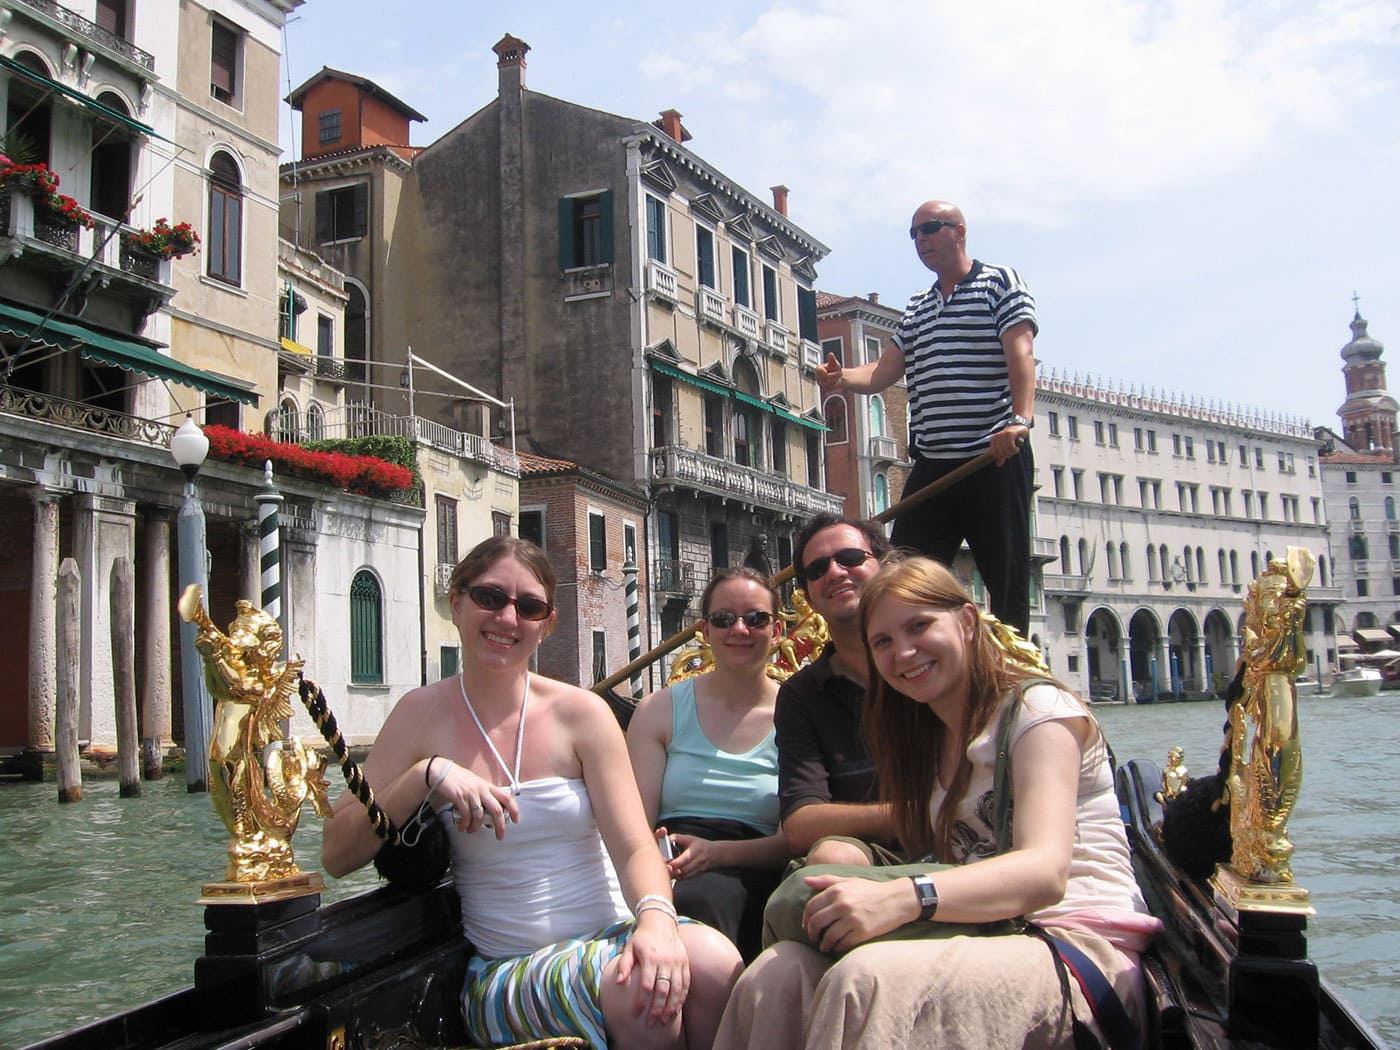 I quit my job to travel the world!A gondola ride in Venice, Italy.